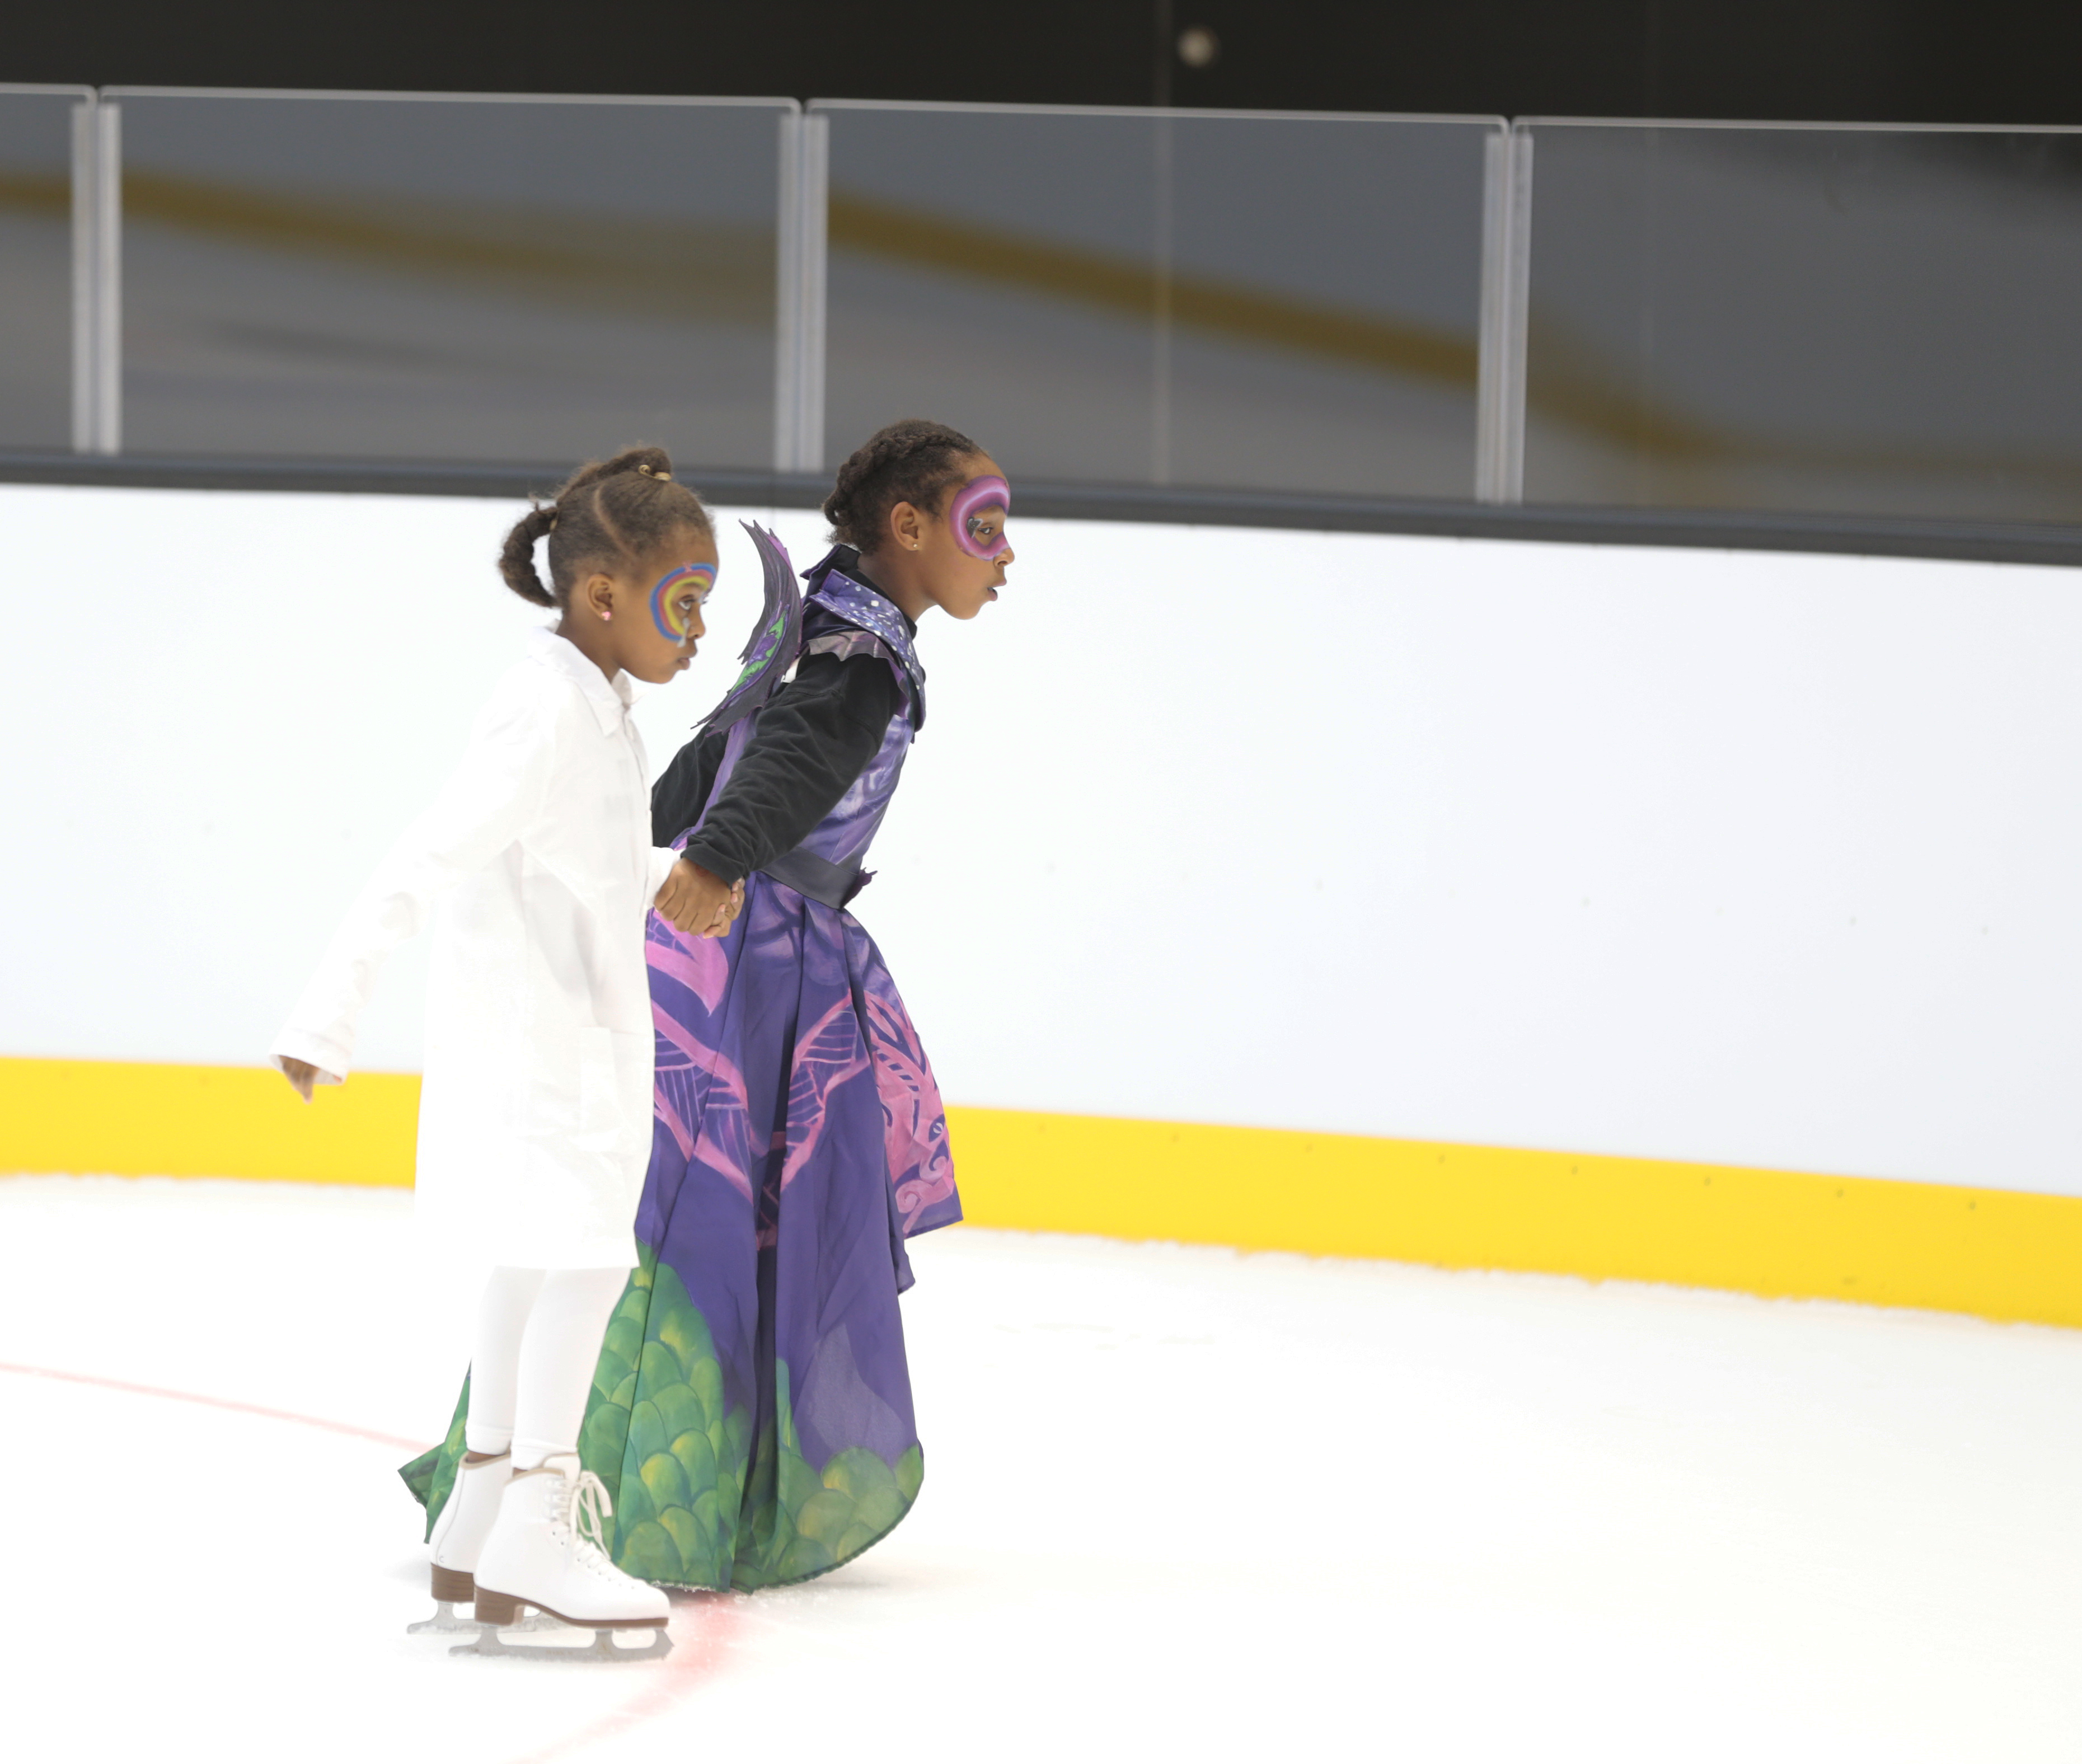 American Dream mall at Meadowlands hosts spooky skating event on Halloween